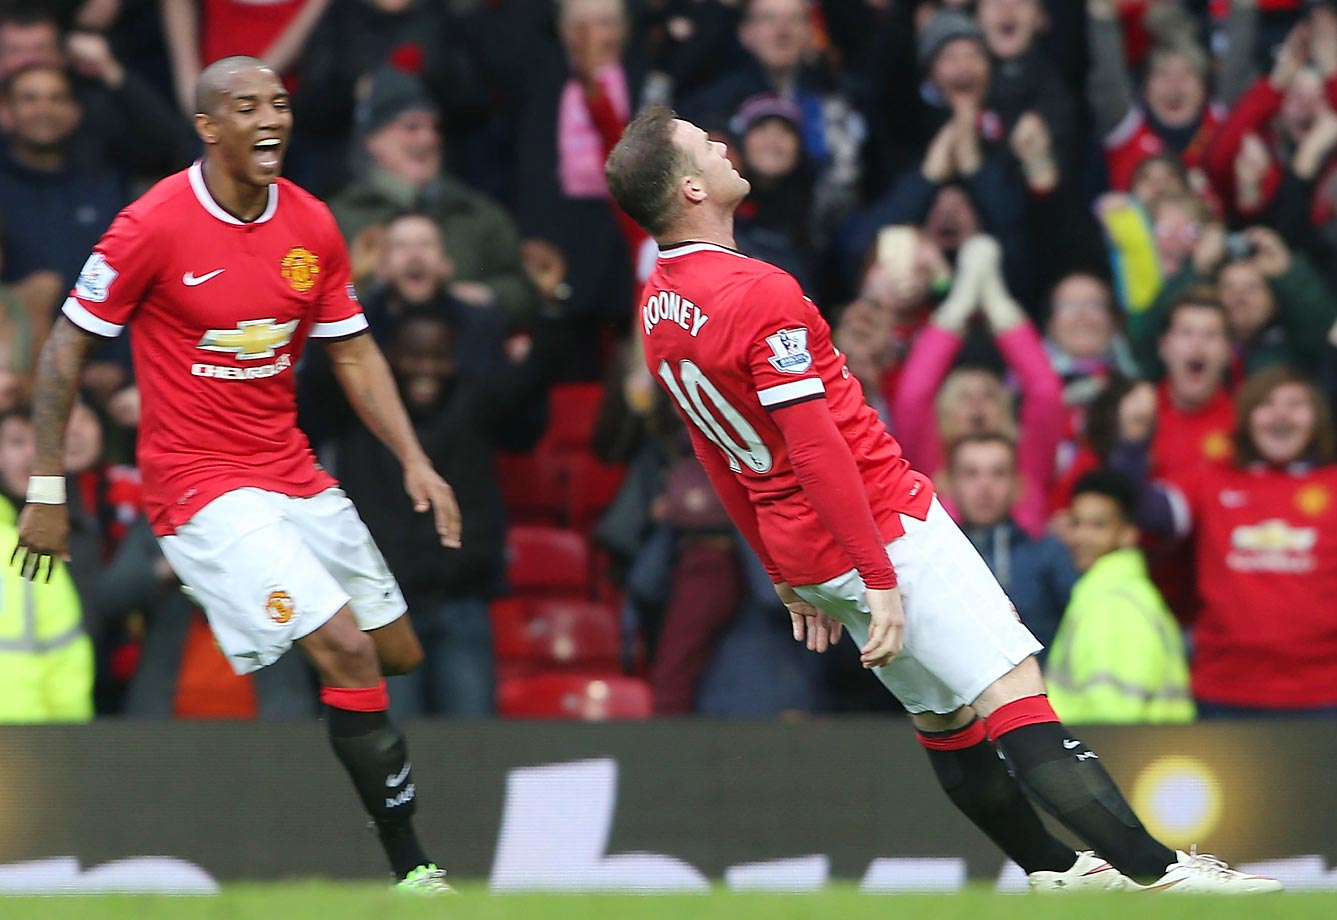 Wayne Rooney of Manchester United celebrates scoring his third goal by pretending to knock himself out.